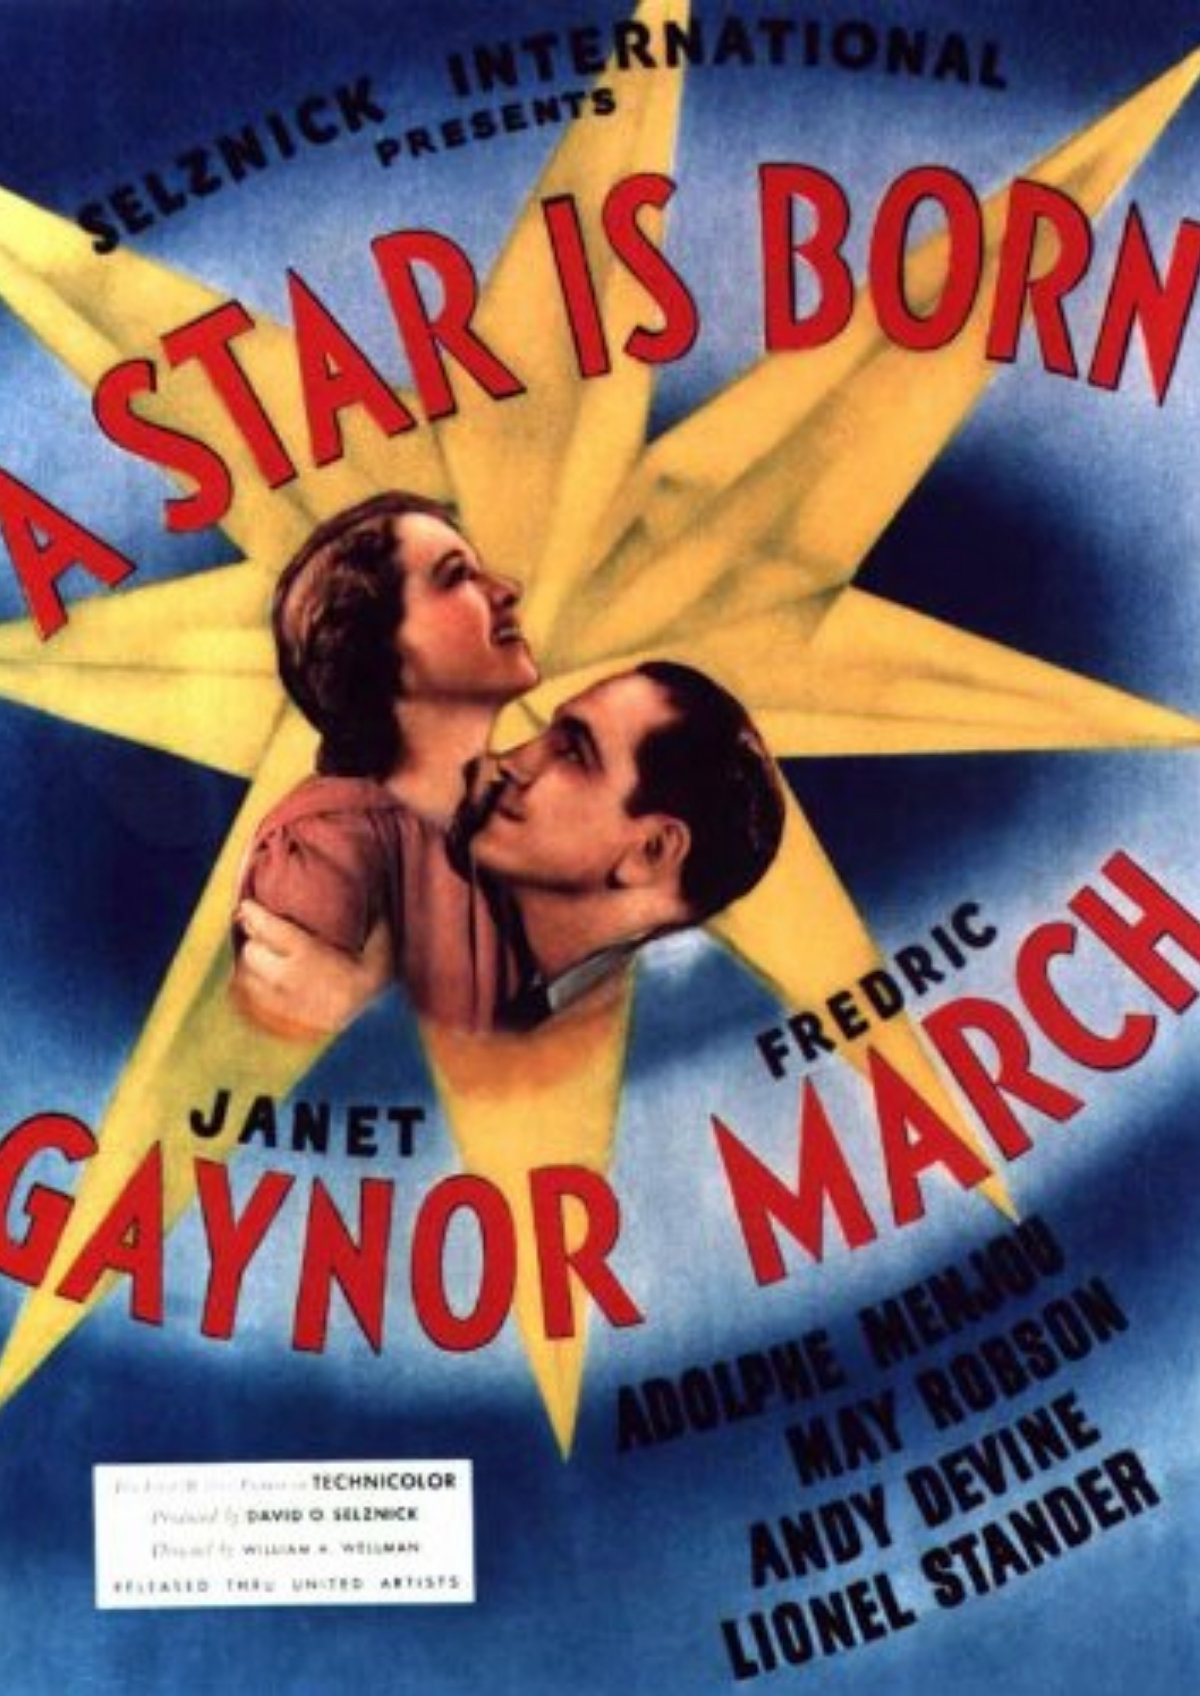 'A Star Is Born (1937)' movie poster